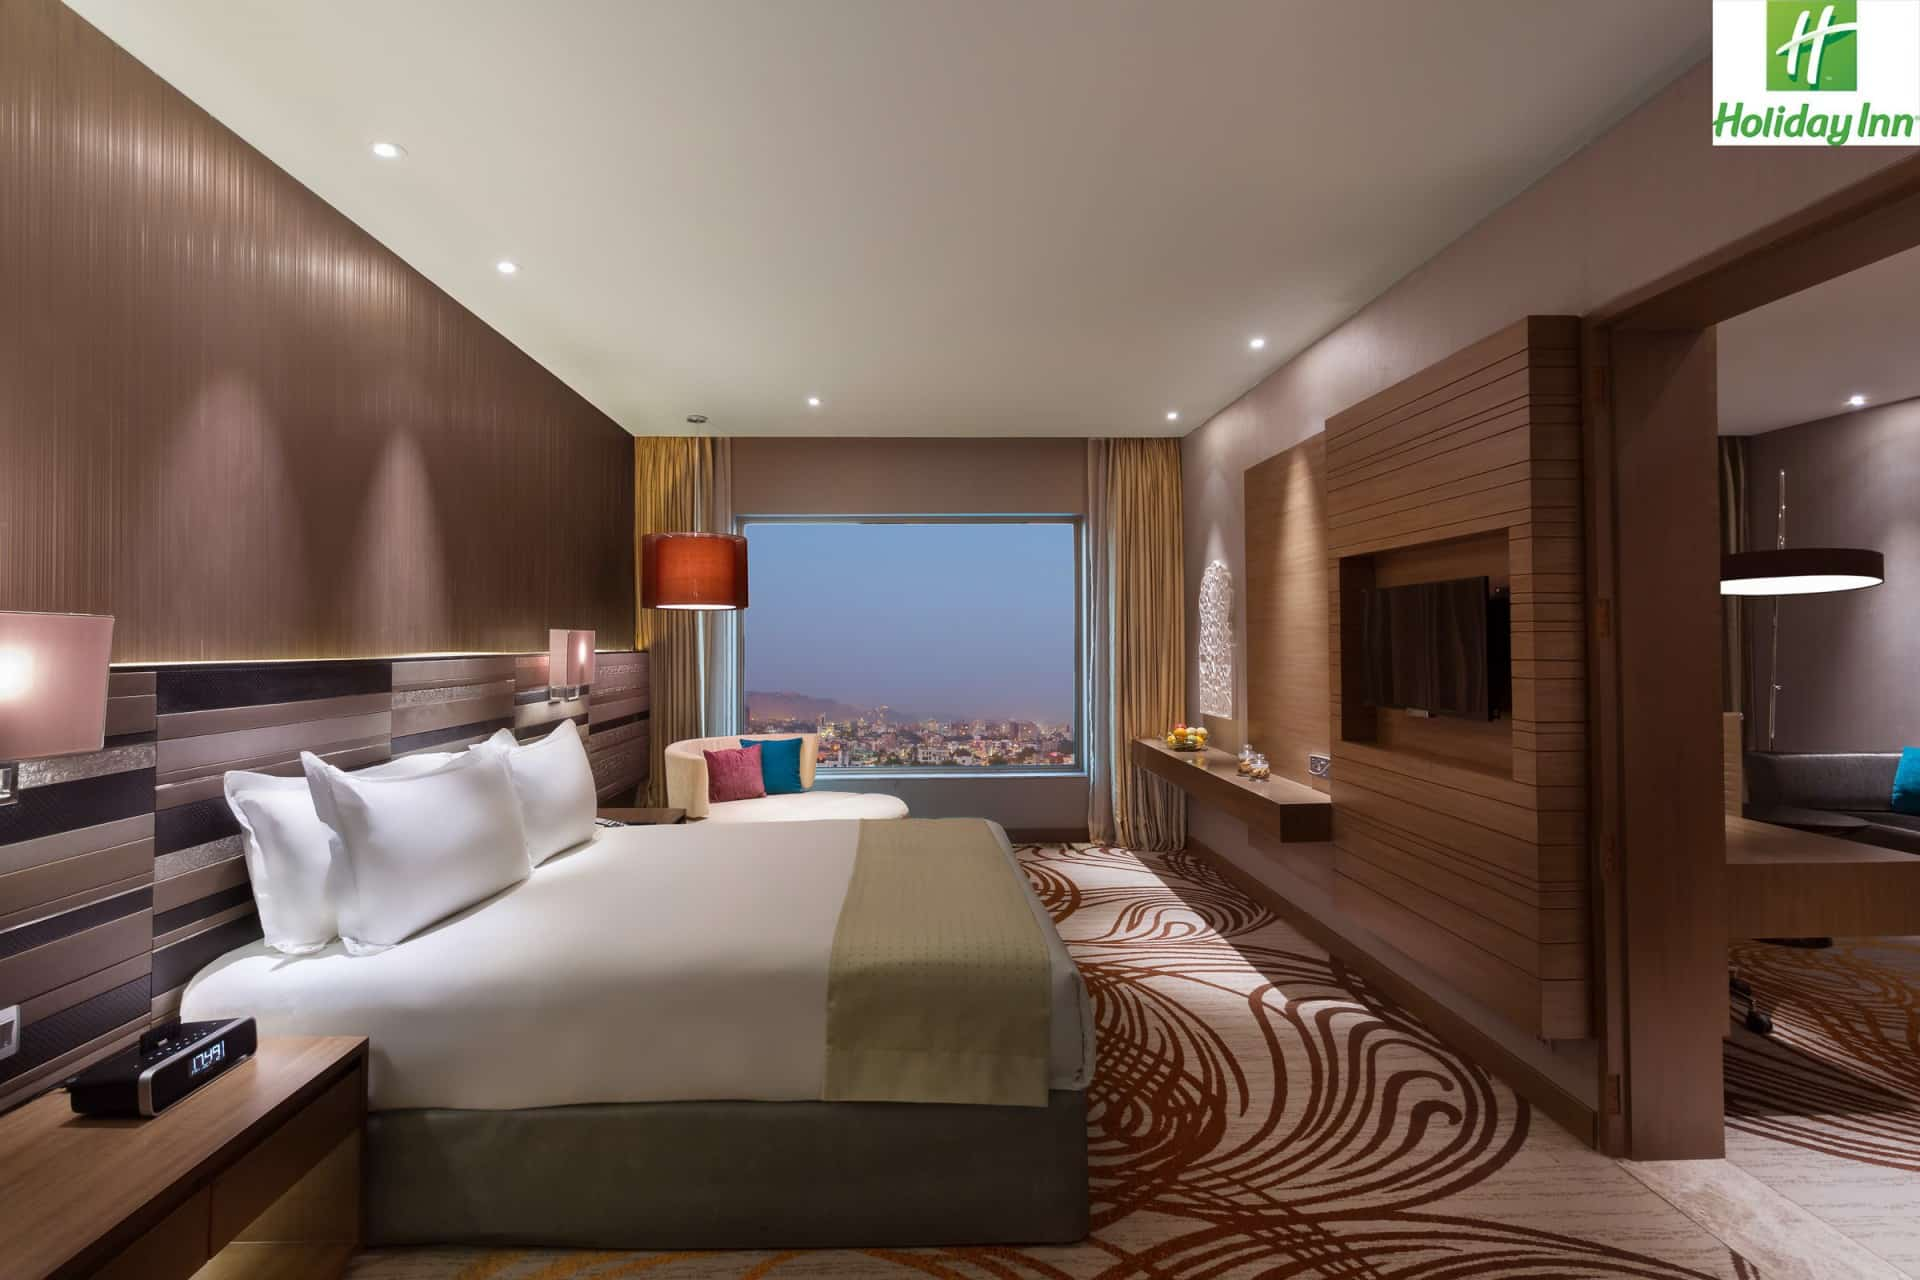 Best Architecture Photographer India   Holiday Inn Delux Room Photography Jaipur